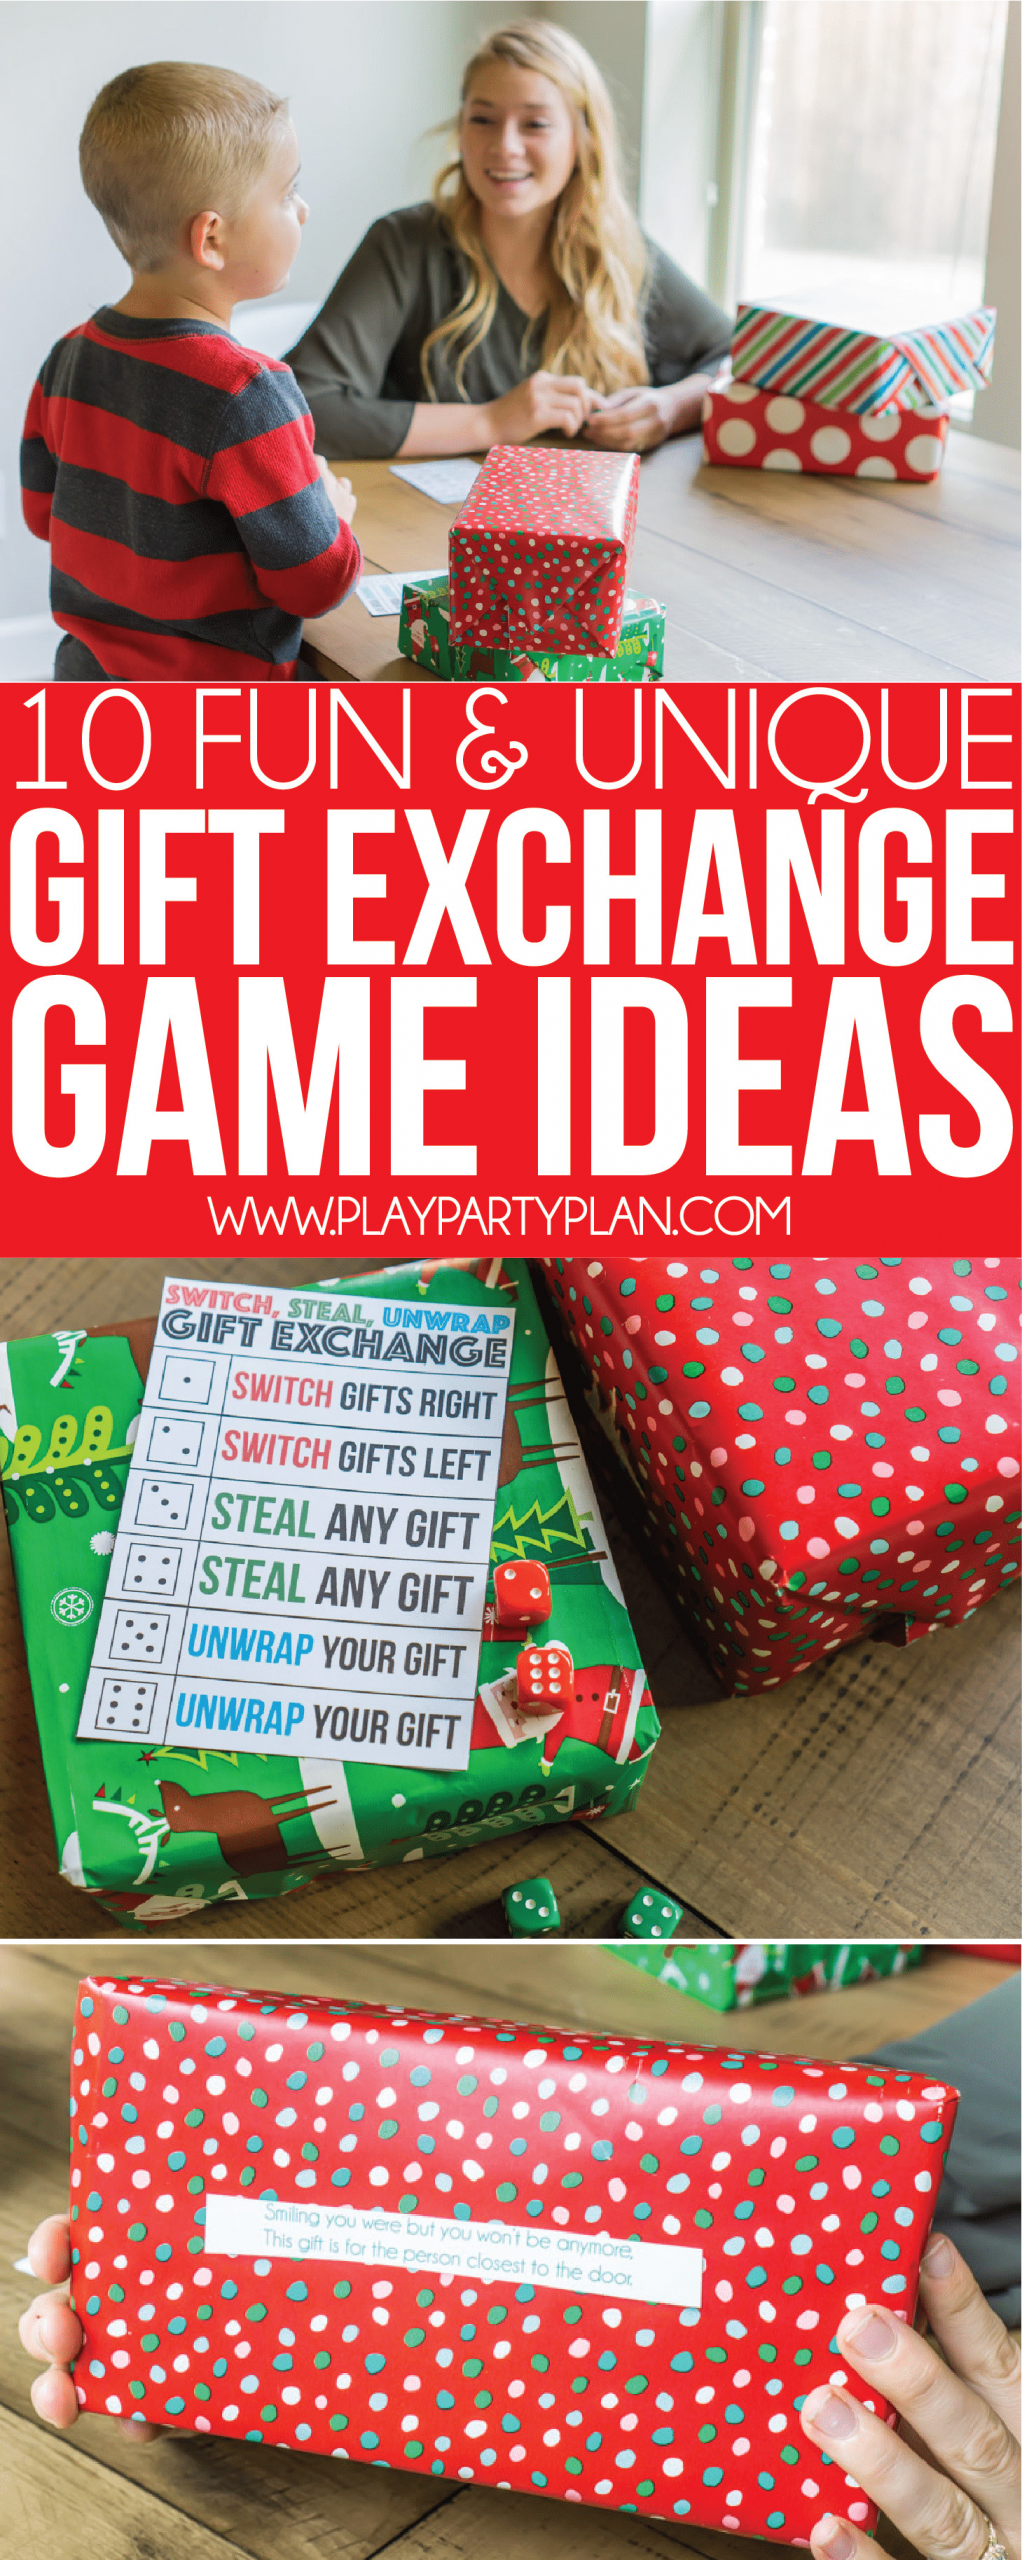 Couples Gift Exchange Ideas  12 Best Christmas Gift Exchange Games Play Party Plan